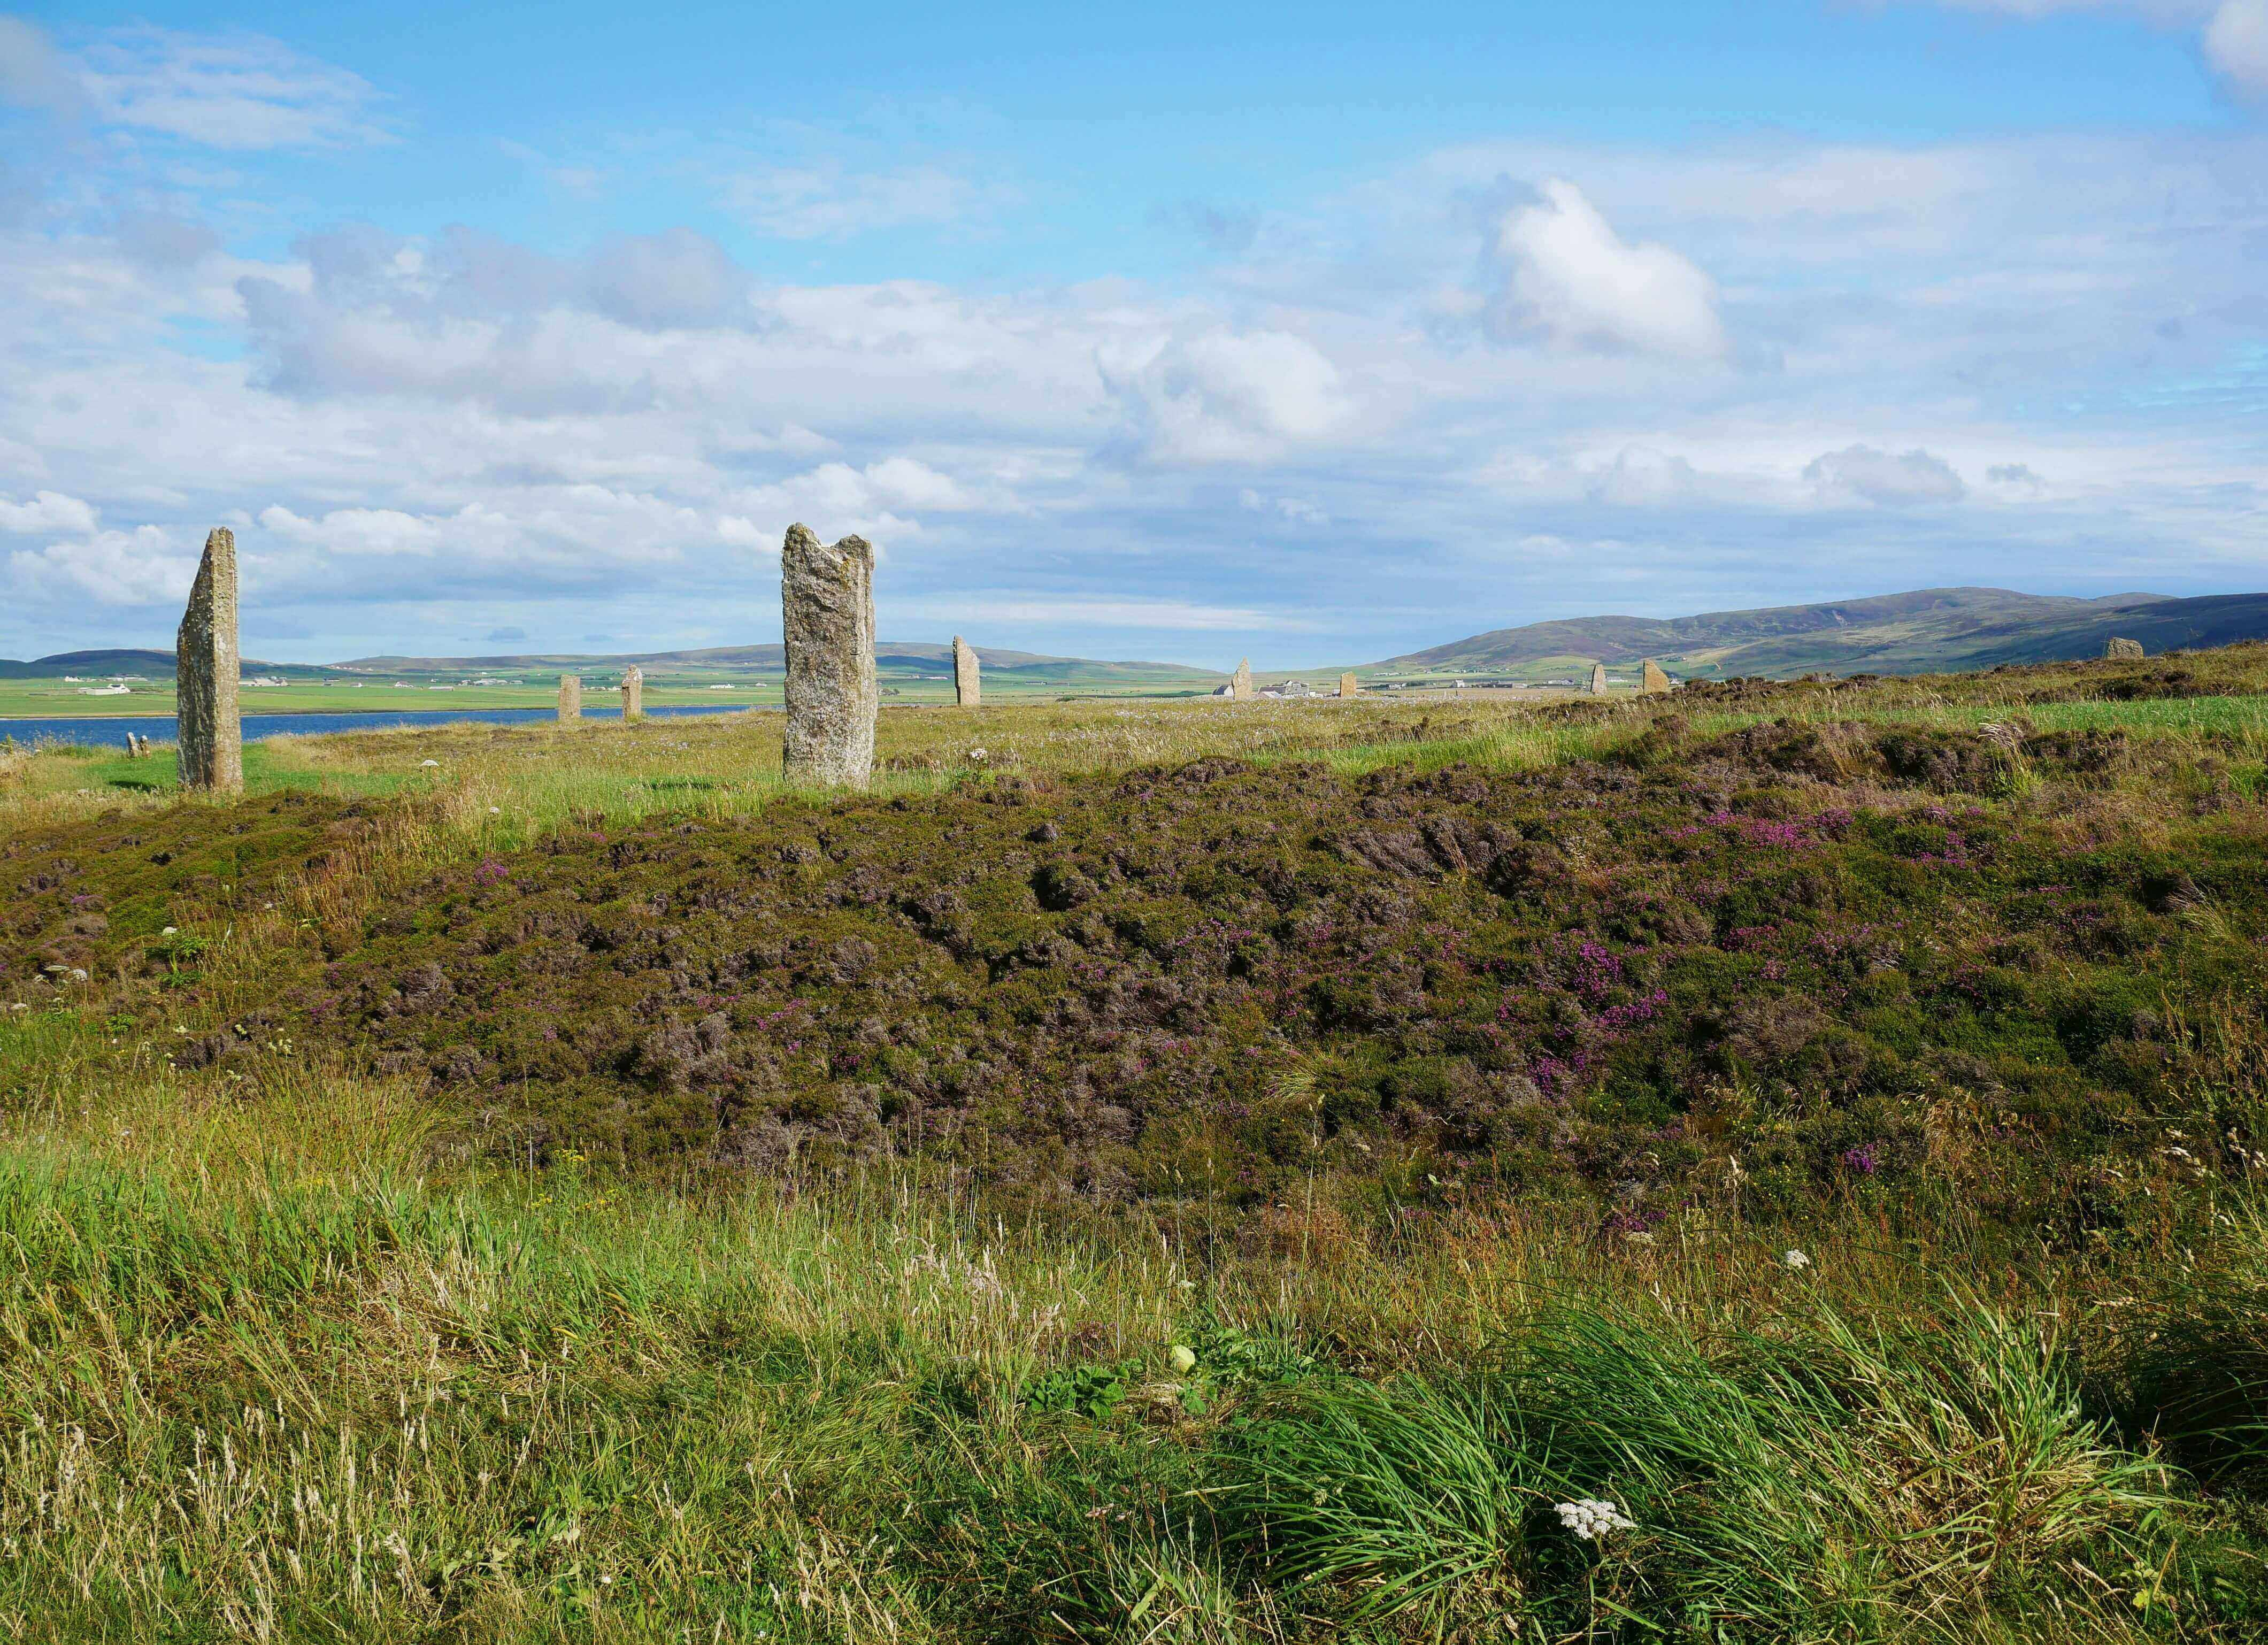 Hilly terrain surrounds the standing stone circle at Brodgar.  Orkney Islands, Scotland, UK. www.orkneyology.com